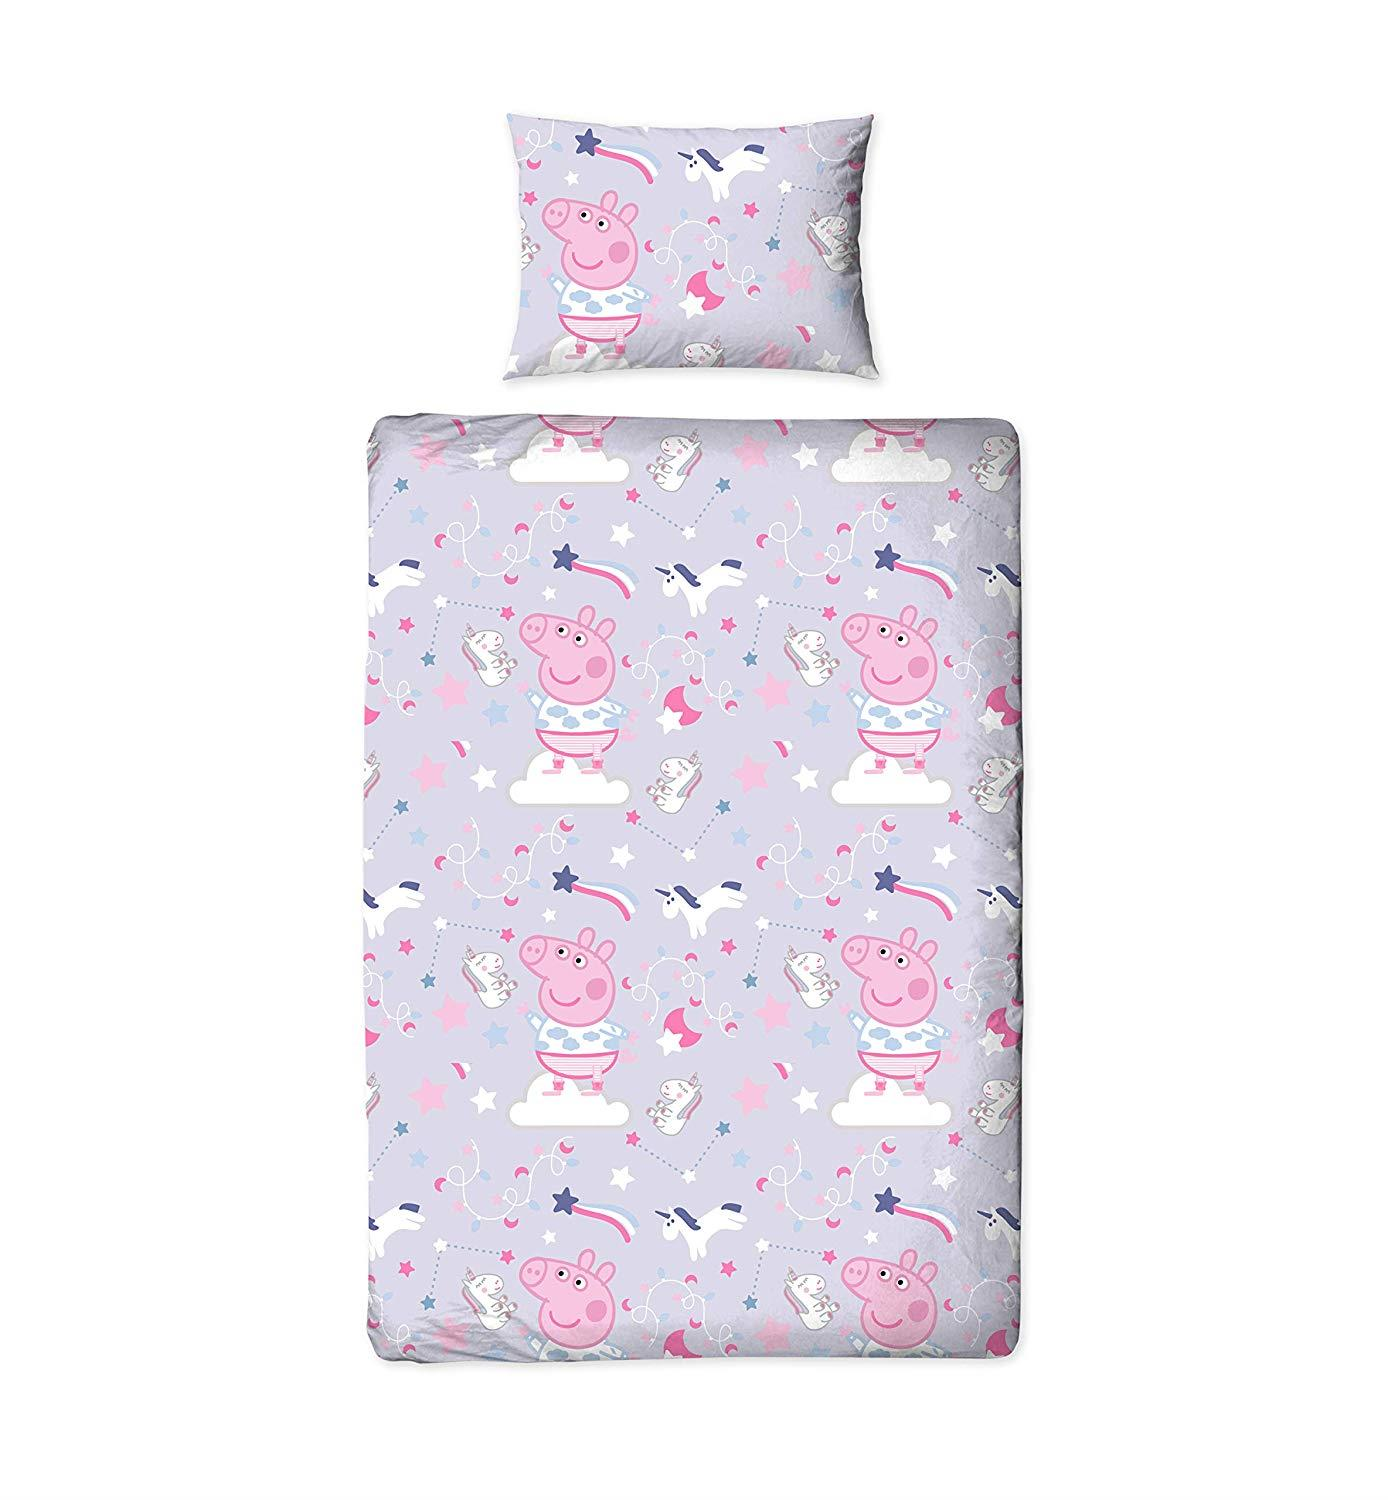 Oficial-Peppa-Pig-George-fundas-nordicas-SINGLE-doble-Ropa-De-Cama-Reversible miniatura 34